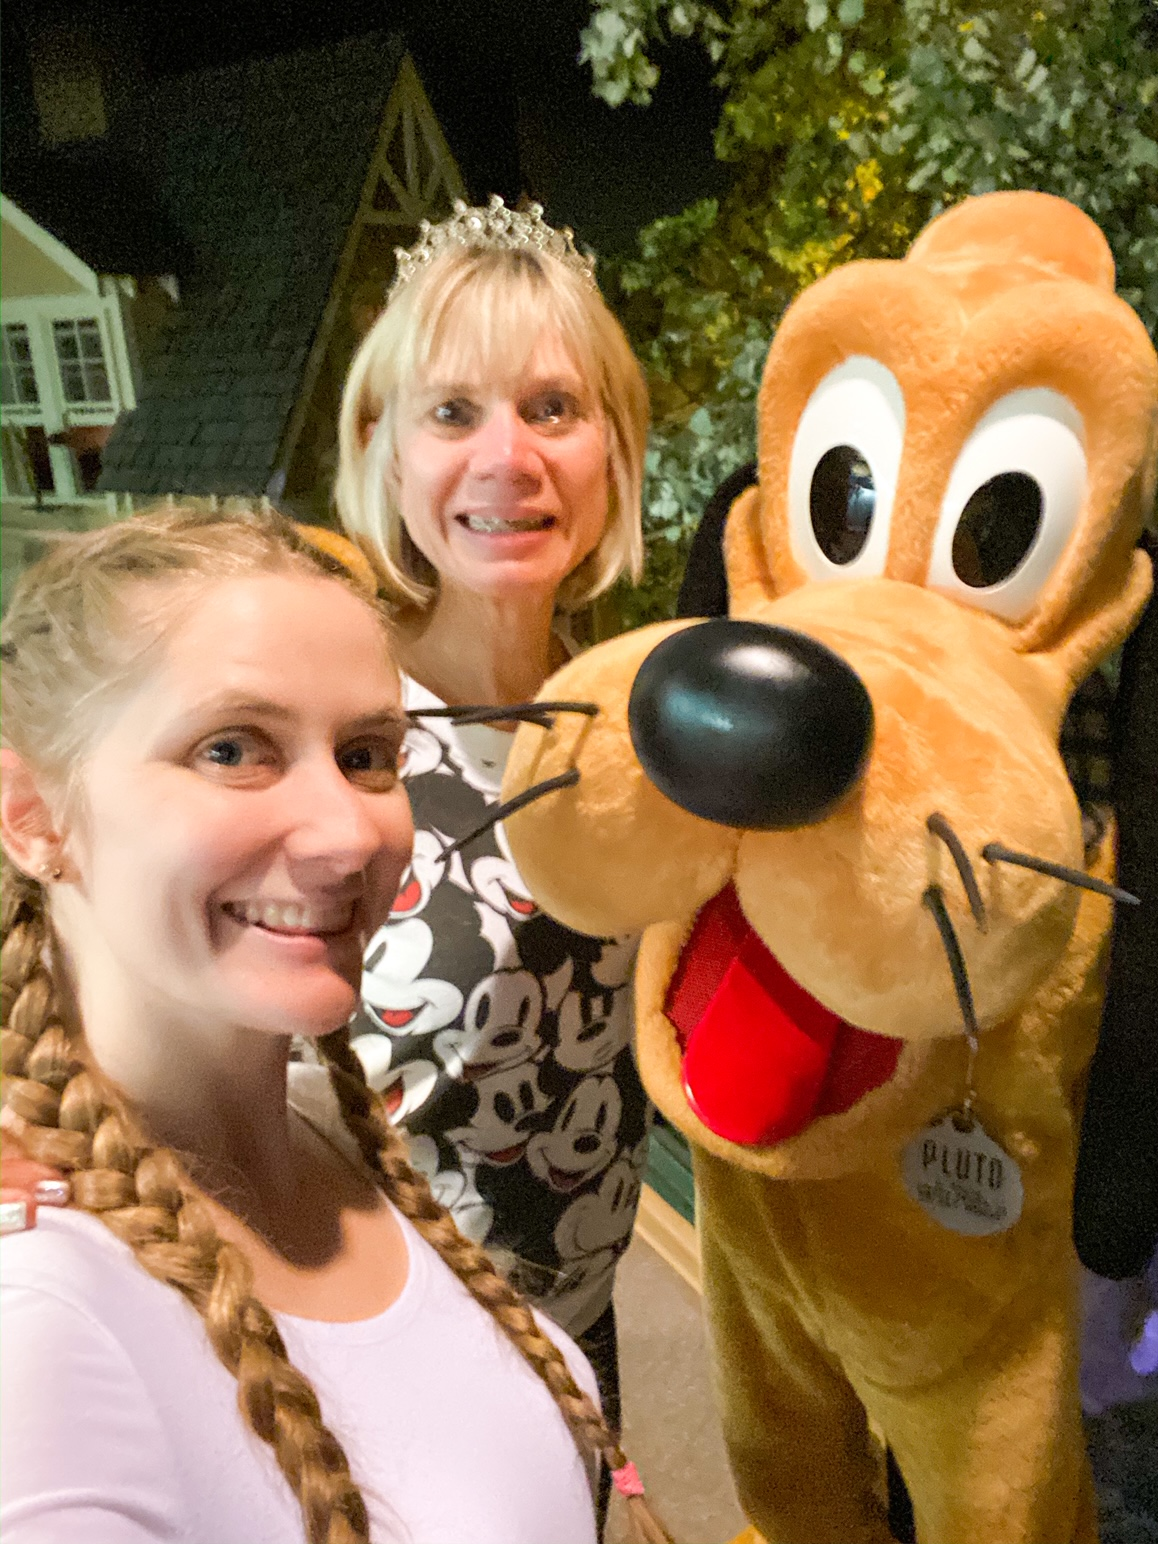 Victoria Yore and Linda Malys Yore Selfie With Pluto